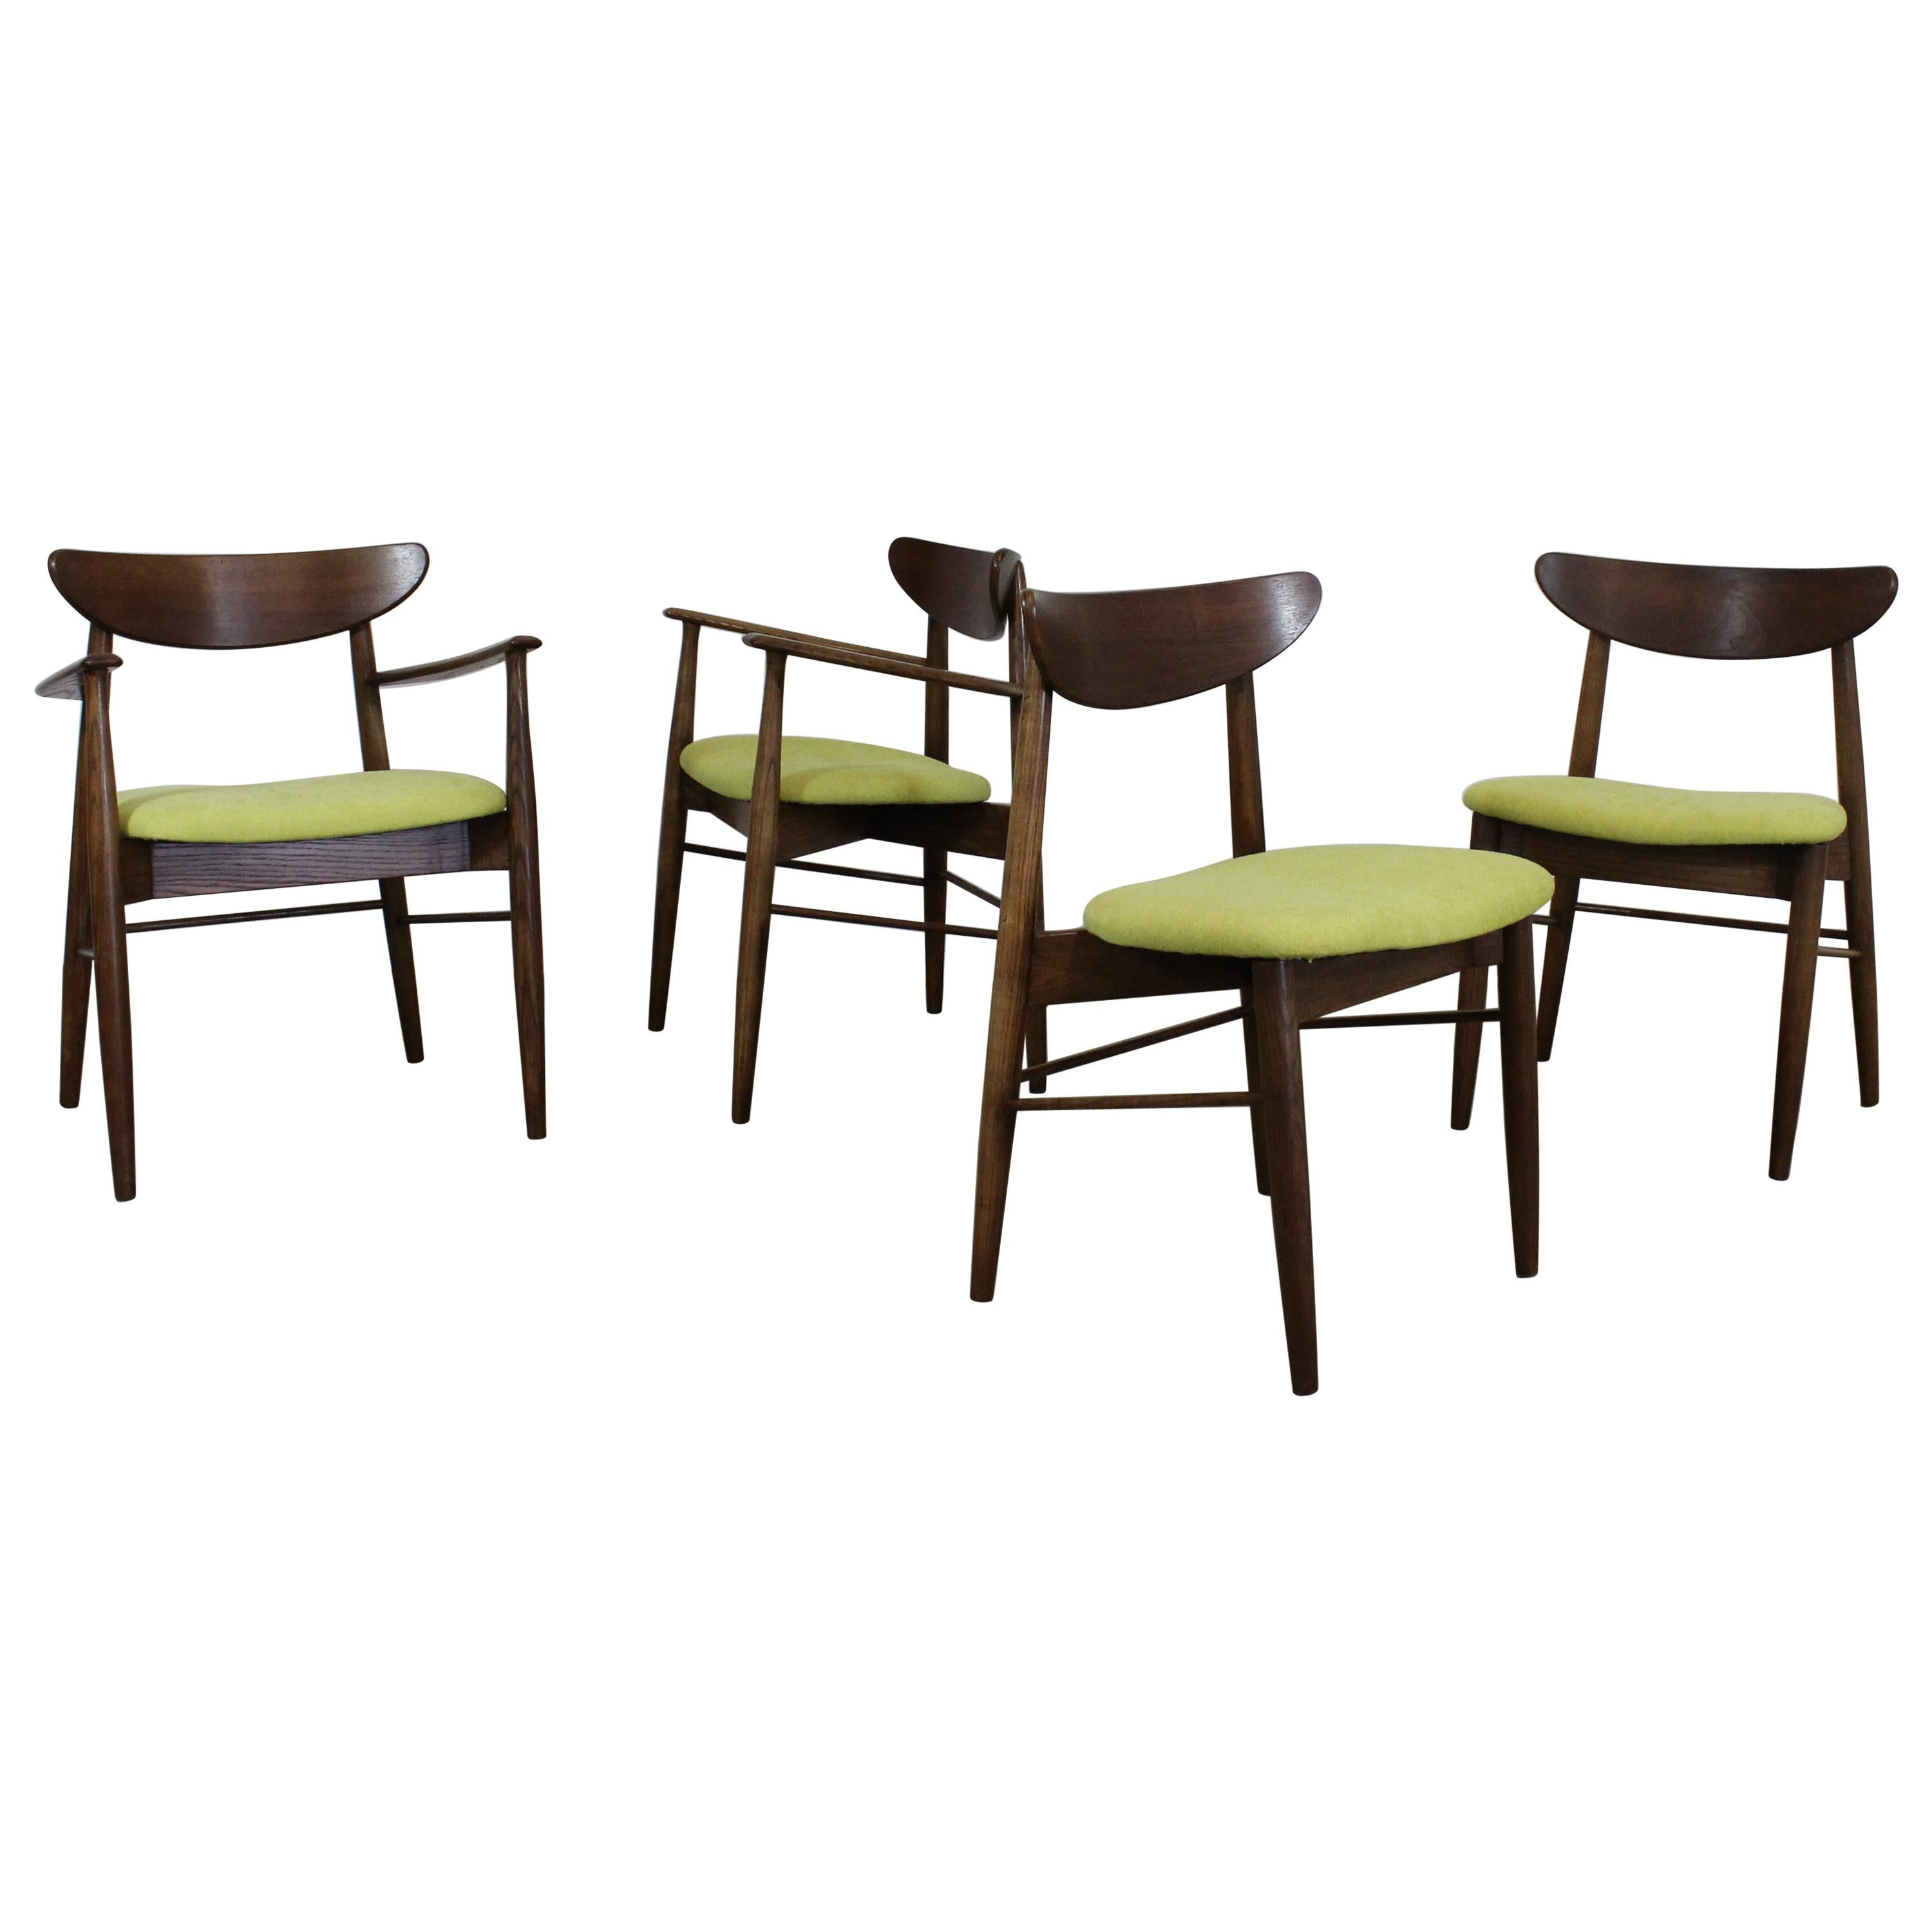 Set of 4 Mid-Century Modern H Paul Browning Shell Back Dining Chairs